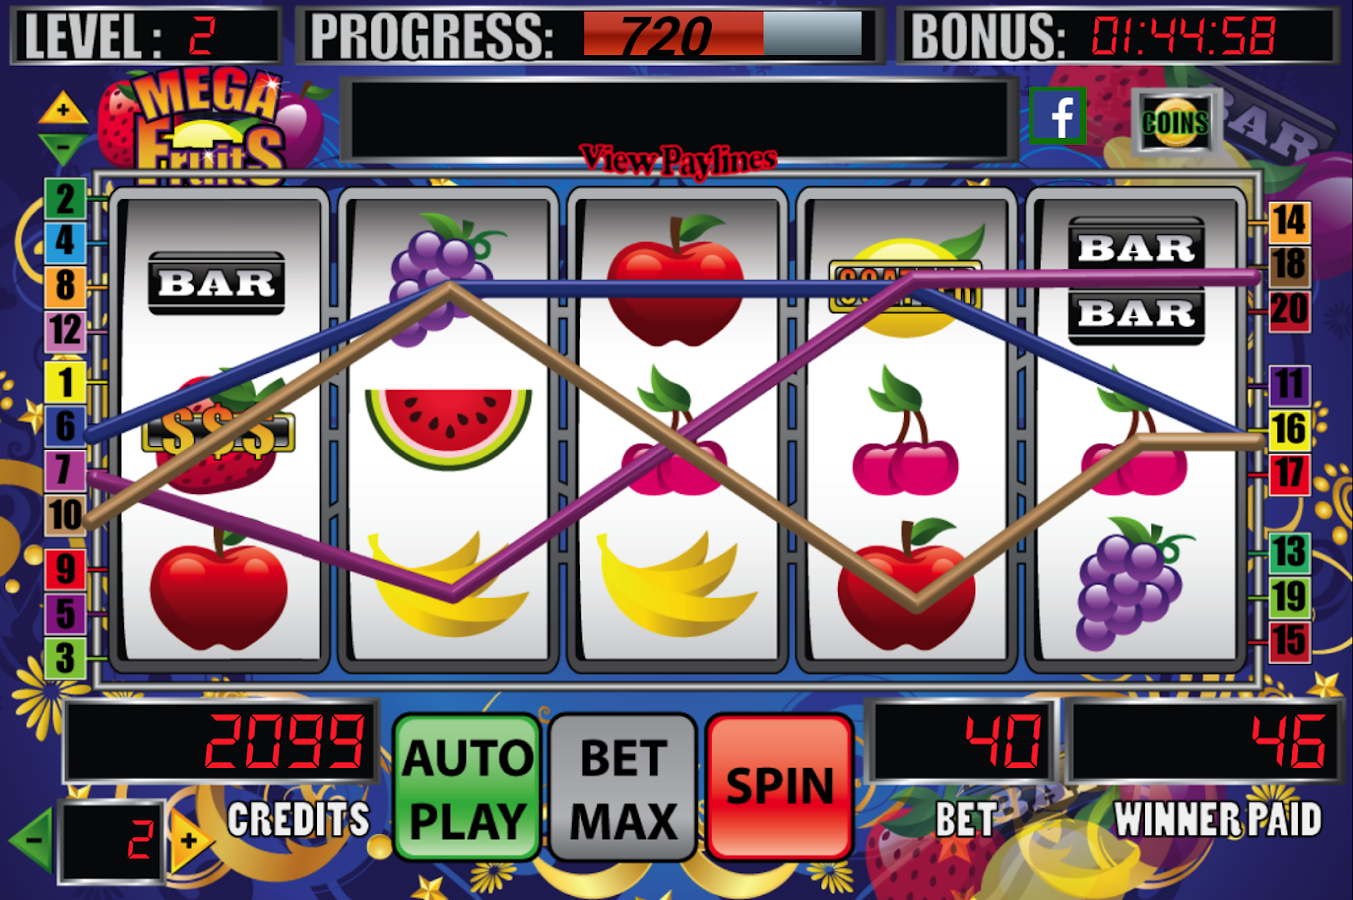 mega bonus slot machine download